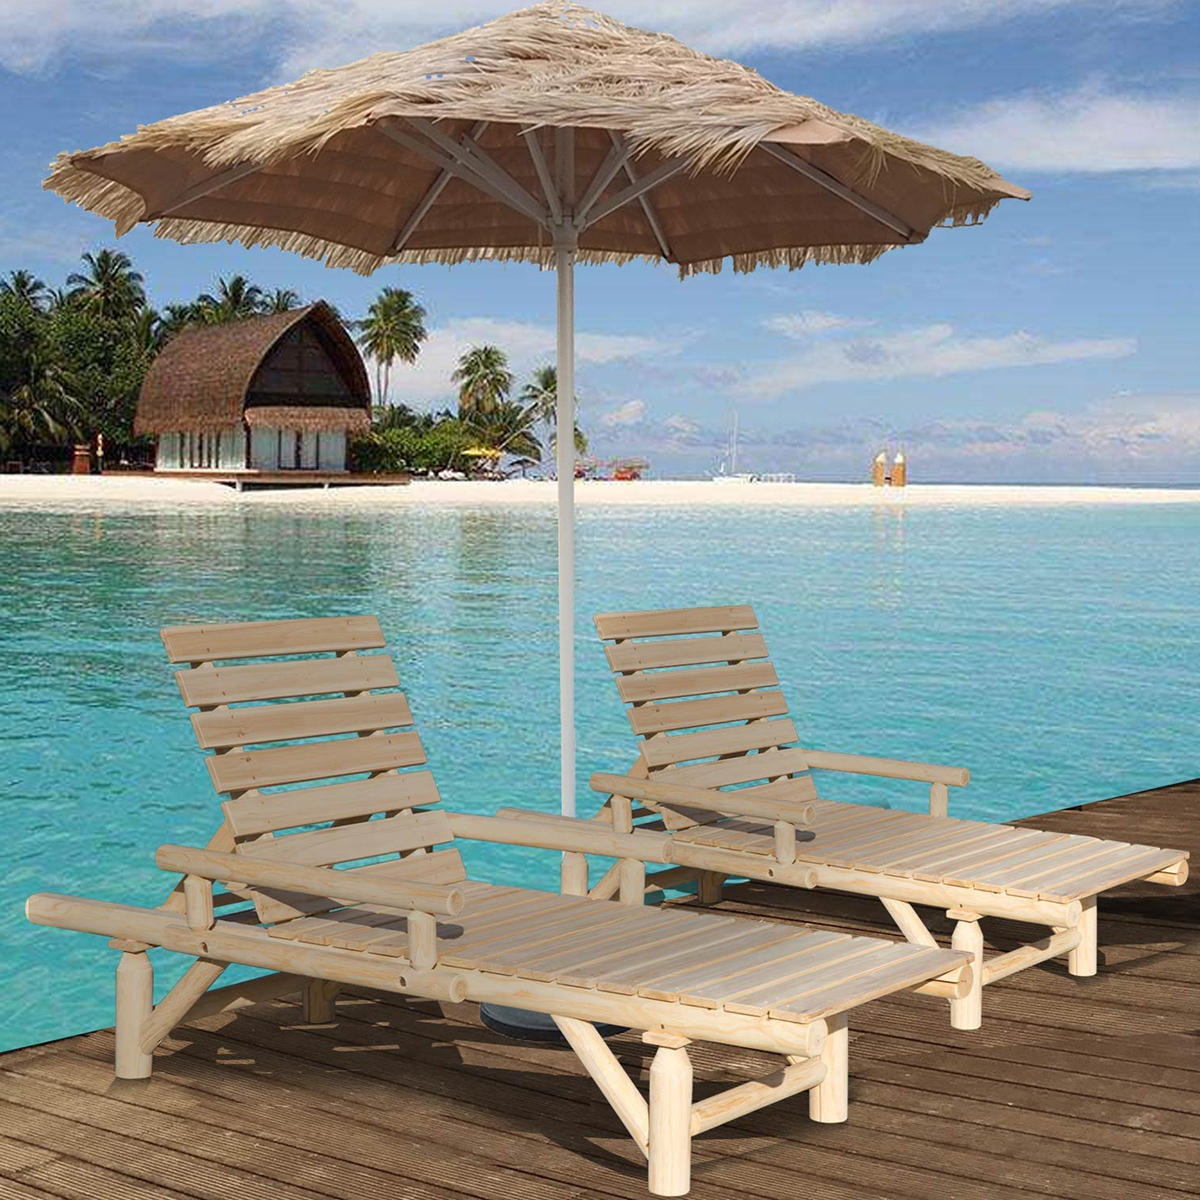 Outdoor Adjustable Wood Chaise Lounges Intended For Well Known New Hammock Chair Outdoor Adjustable Chaise Lounge Chair (View 19 of 25)